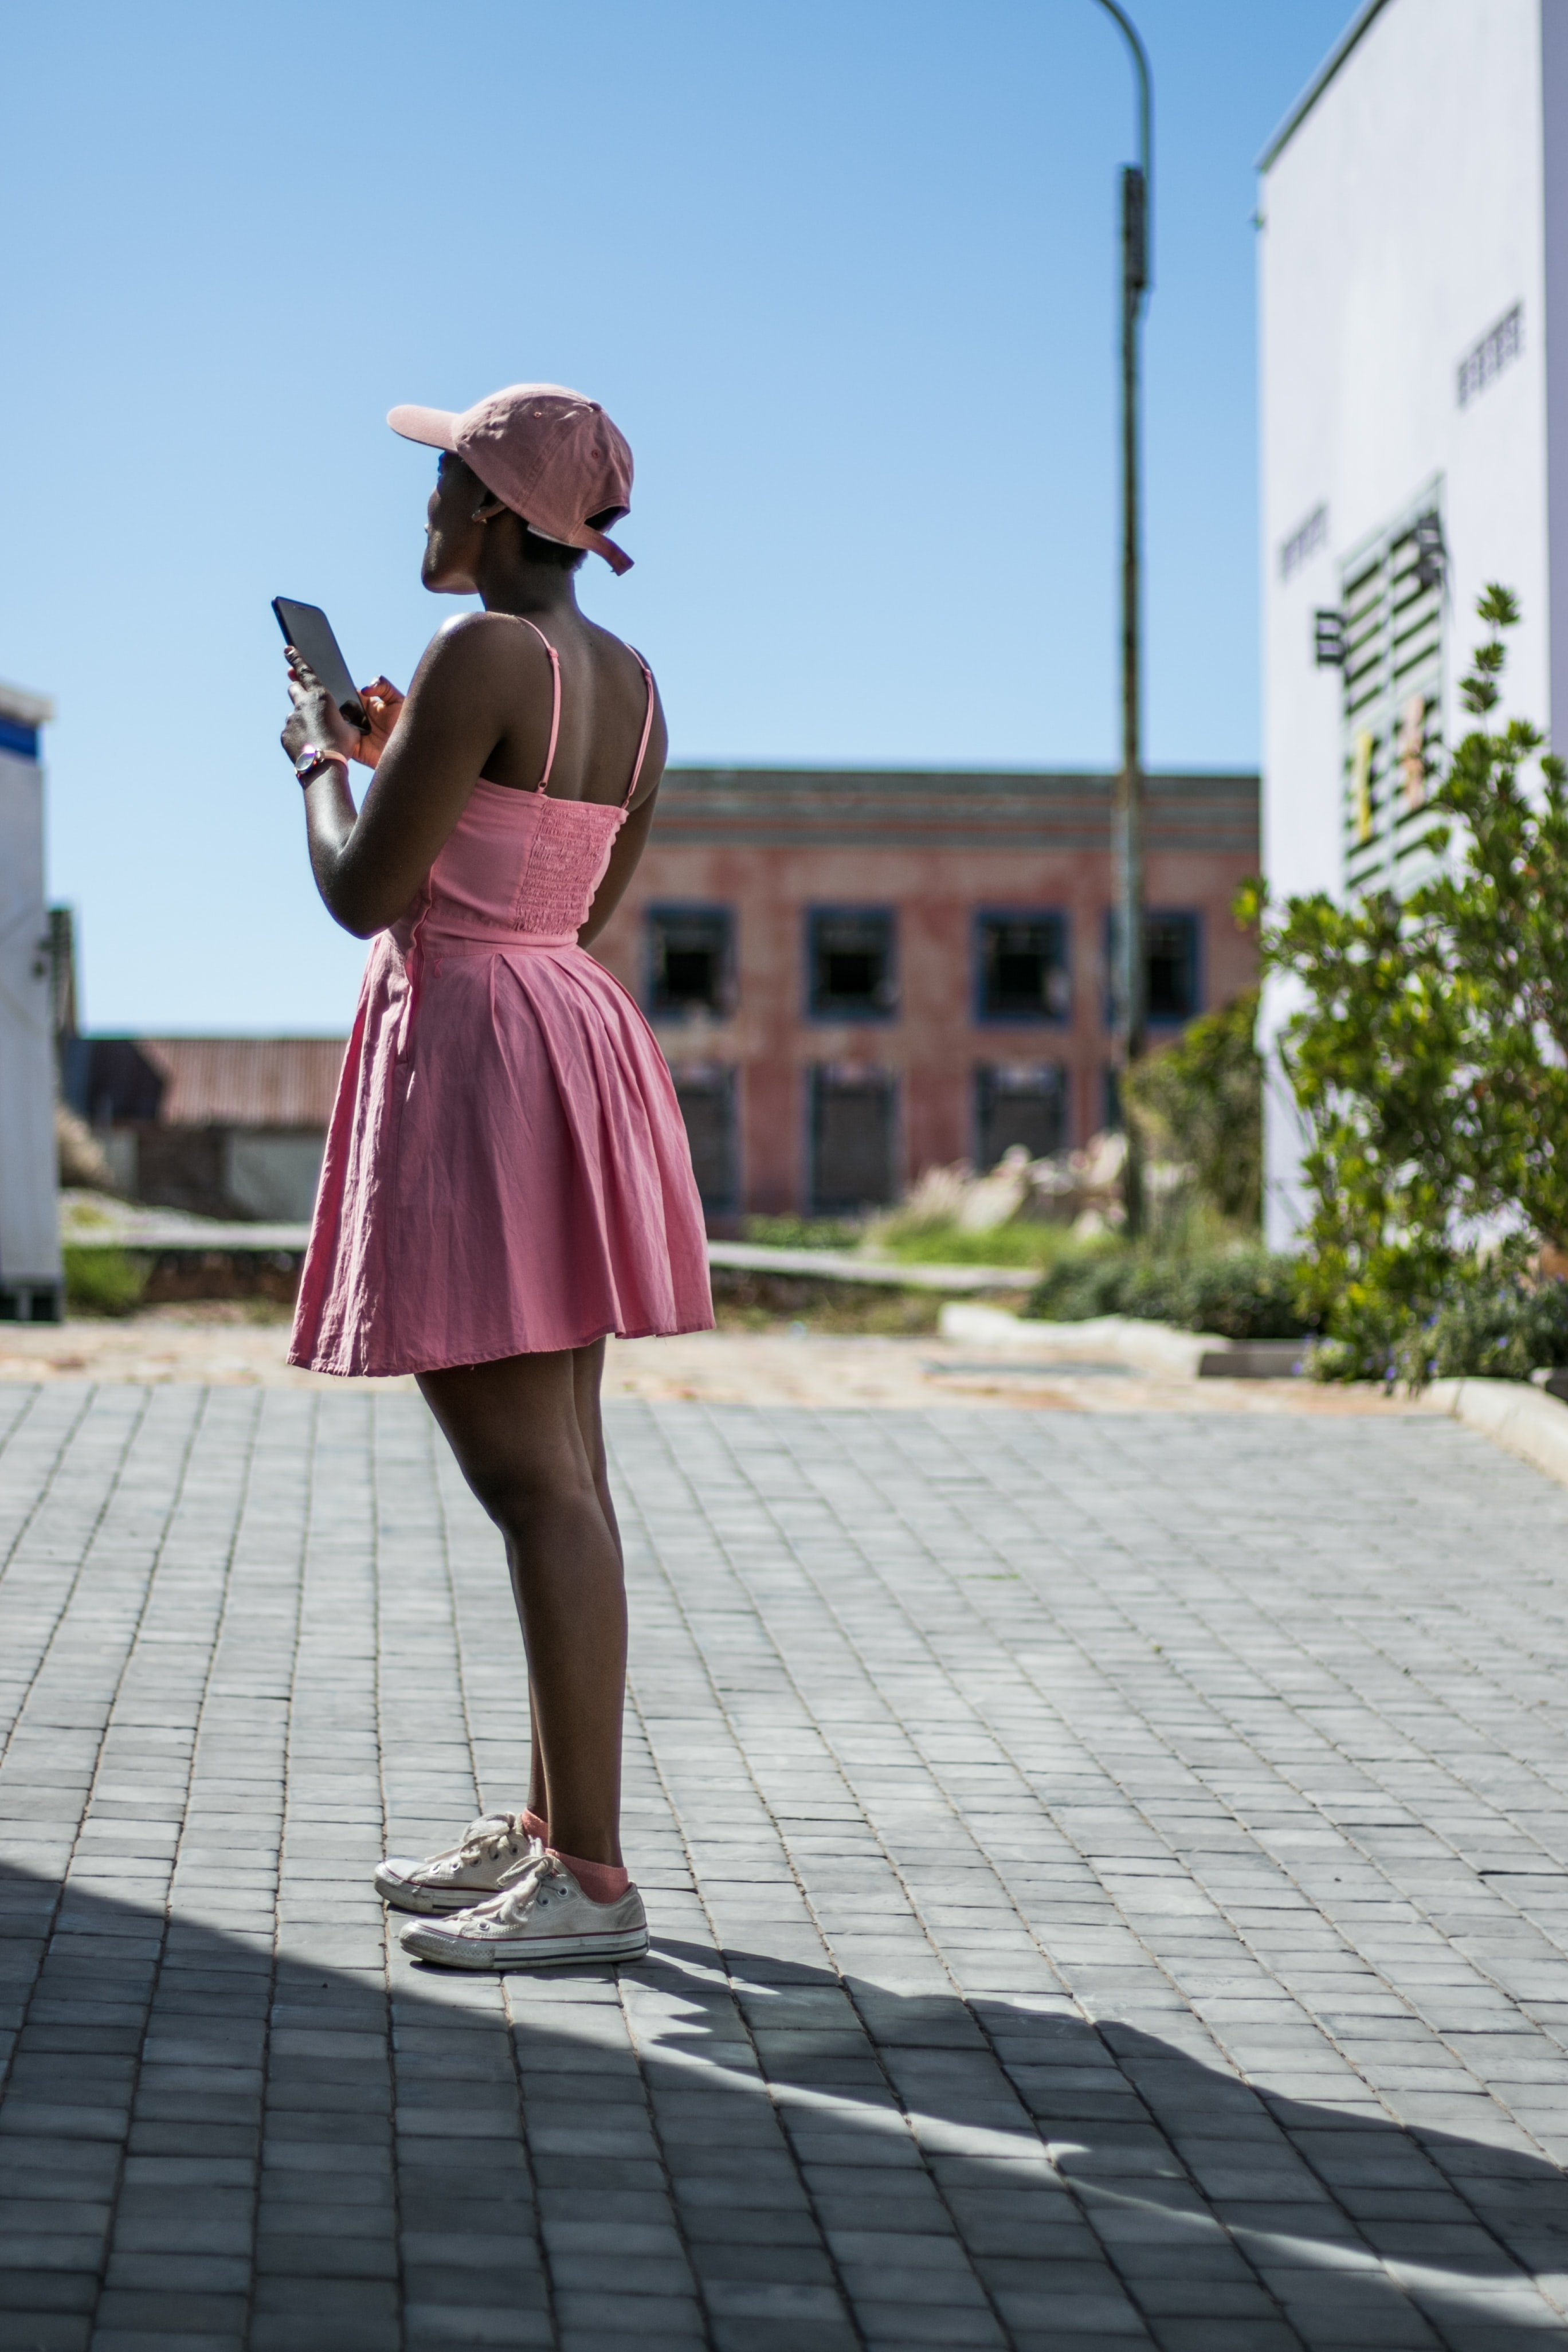 woman in pink spaghetti-strap mini dress using smartphone